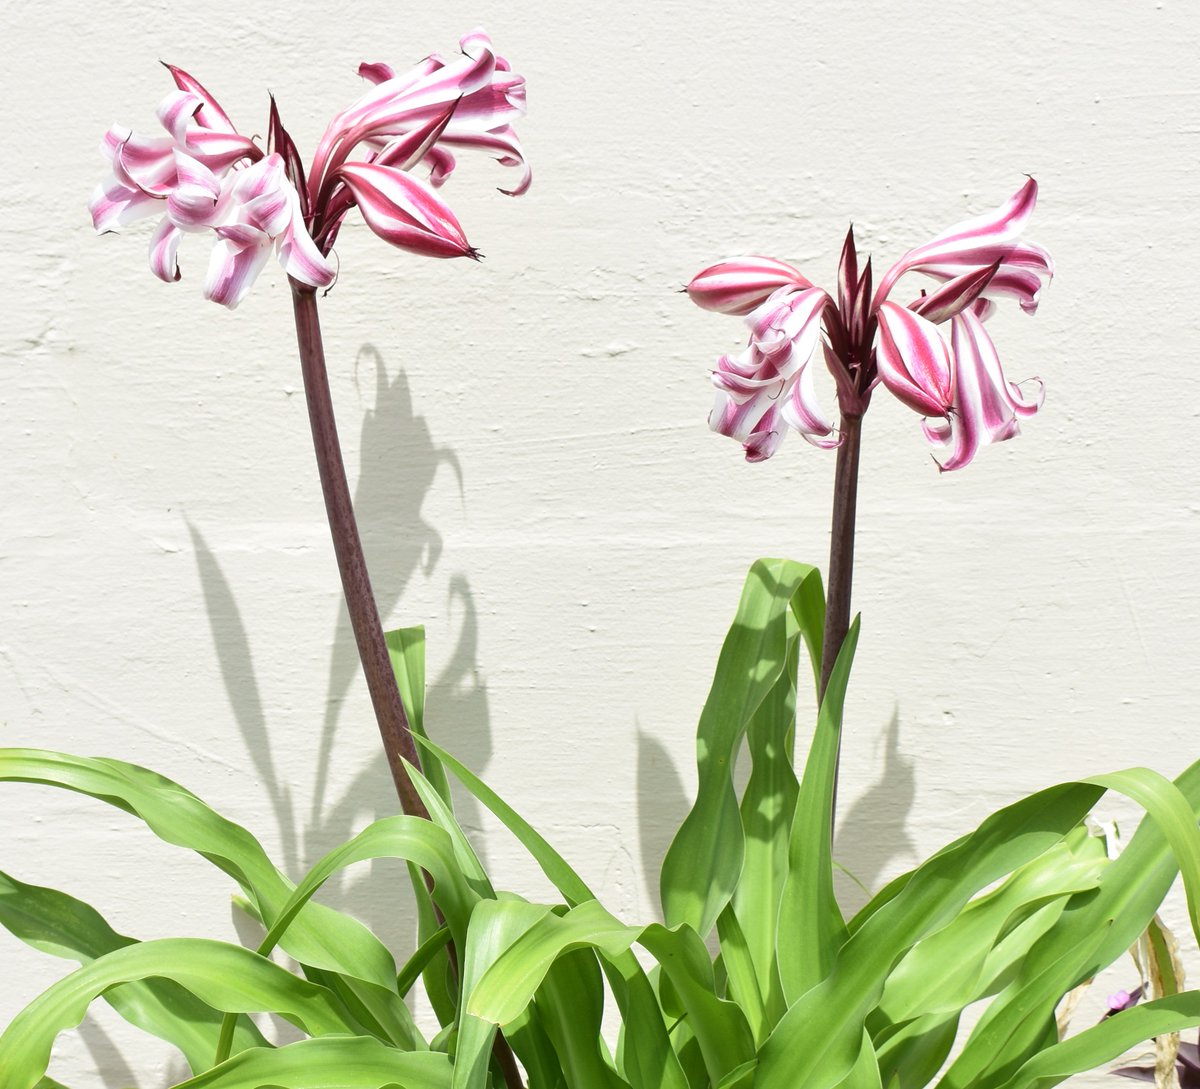 Connies orchid bar on twitter my neighbors lilies look like a connies orchid bar on twitter my neighbors lilies look like a painting or a nature print lily flowers simplebeauty izmirmasajfo